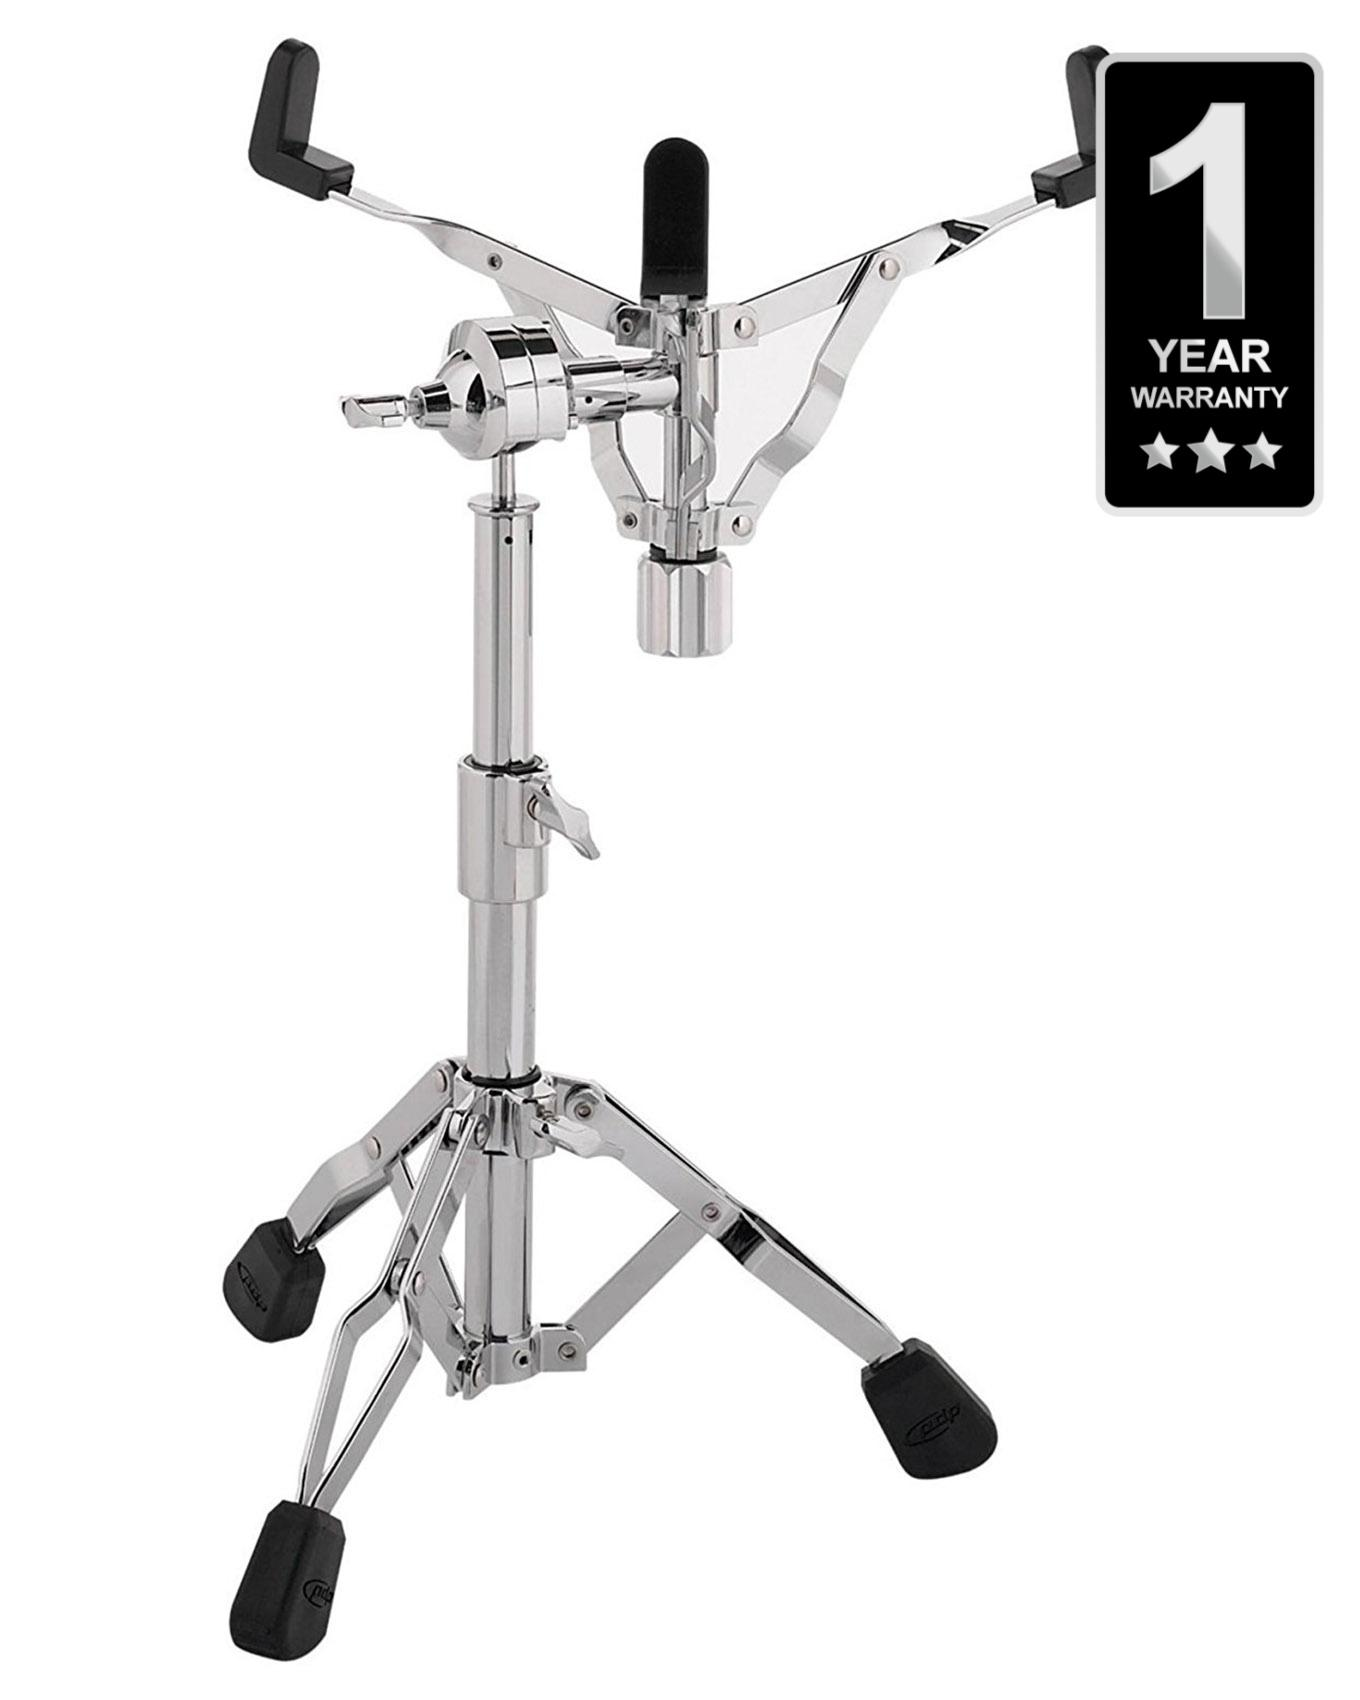 Buy AR,DW,ASUS Electronic Drums at Best Prices Online in Sri Lanka